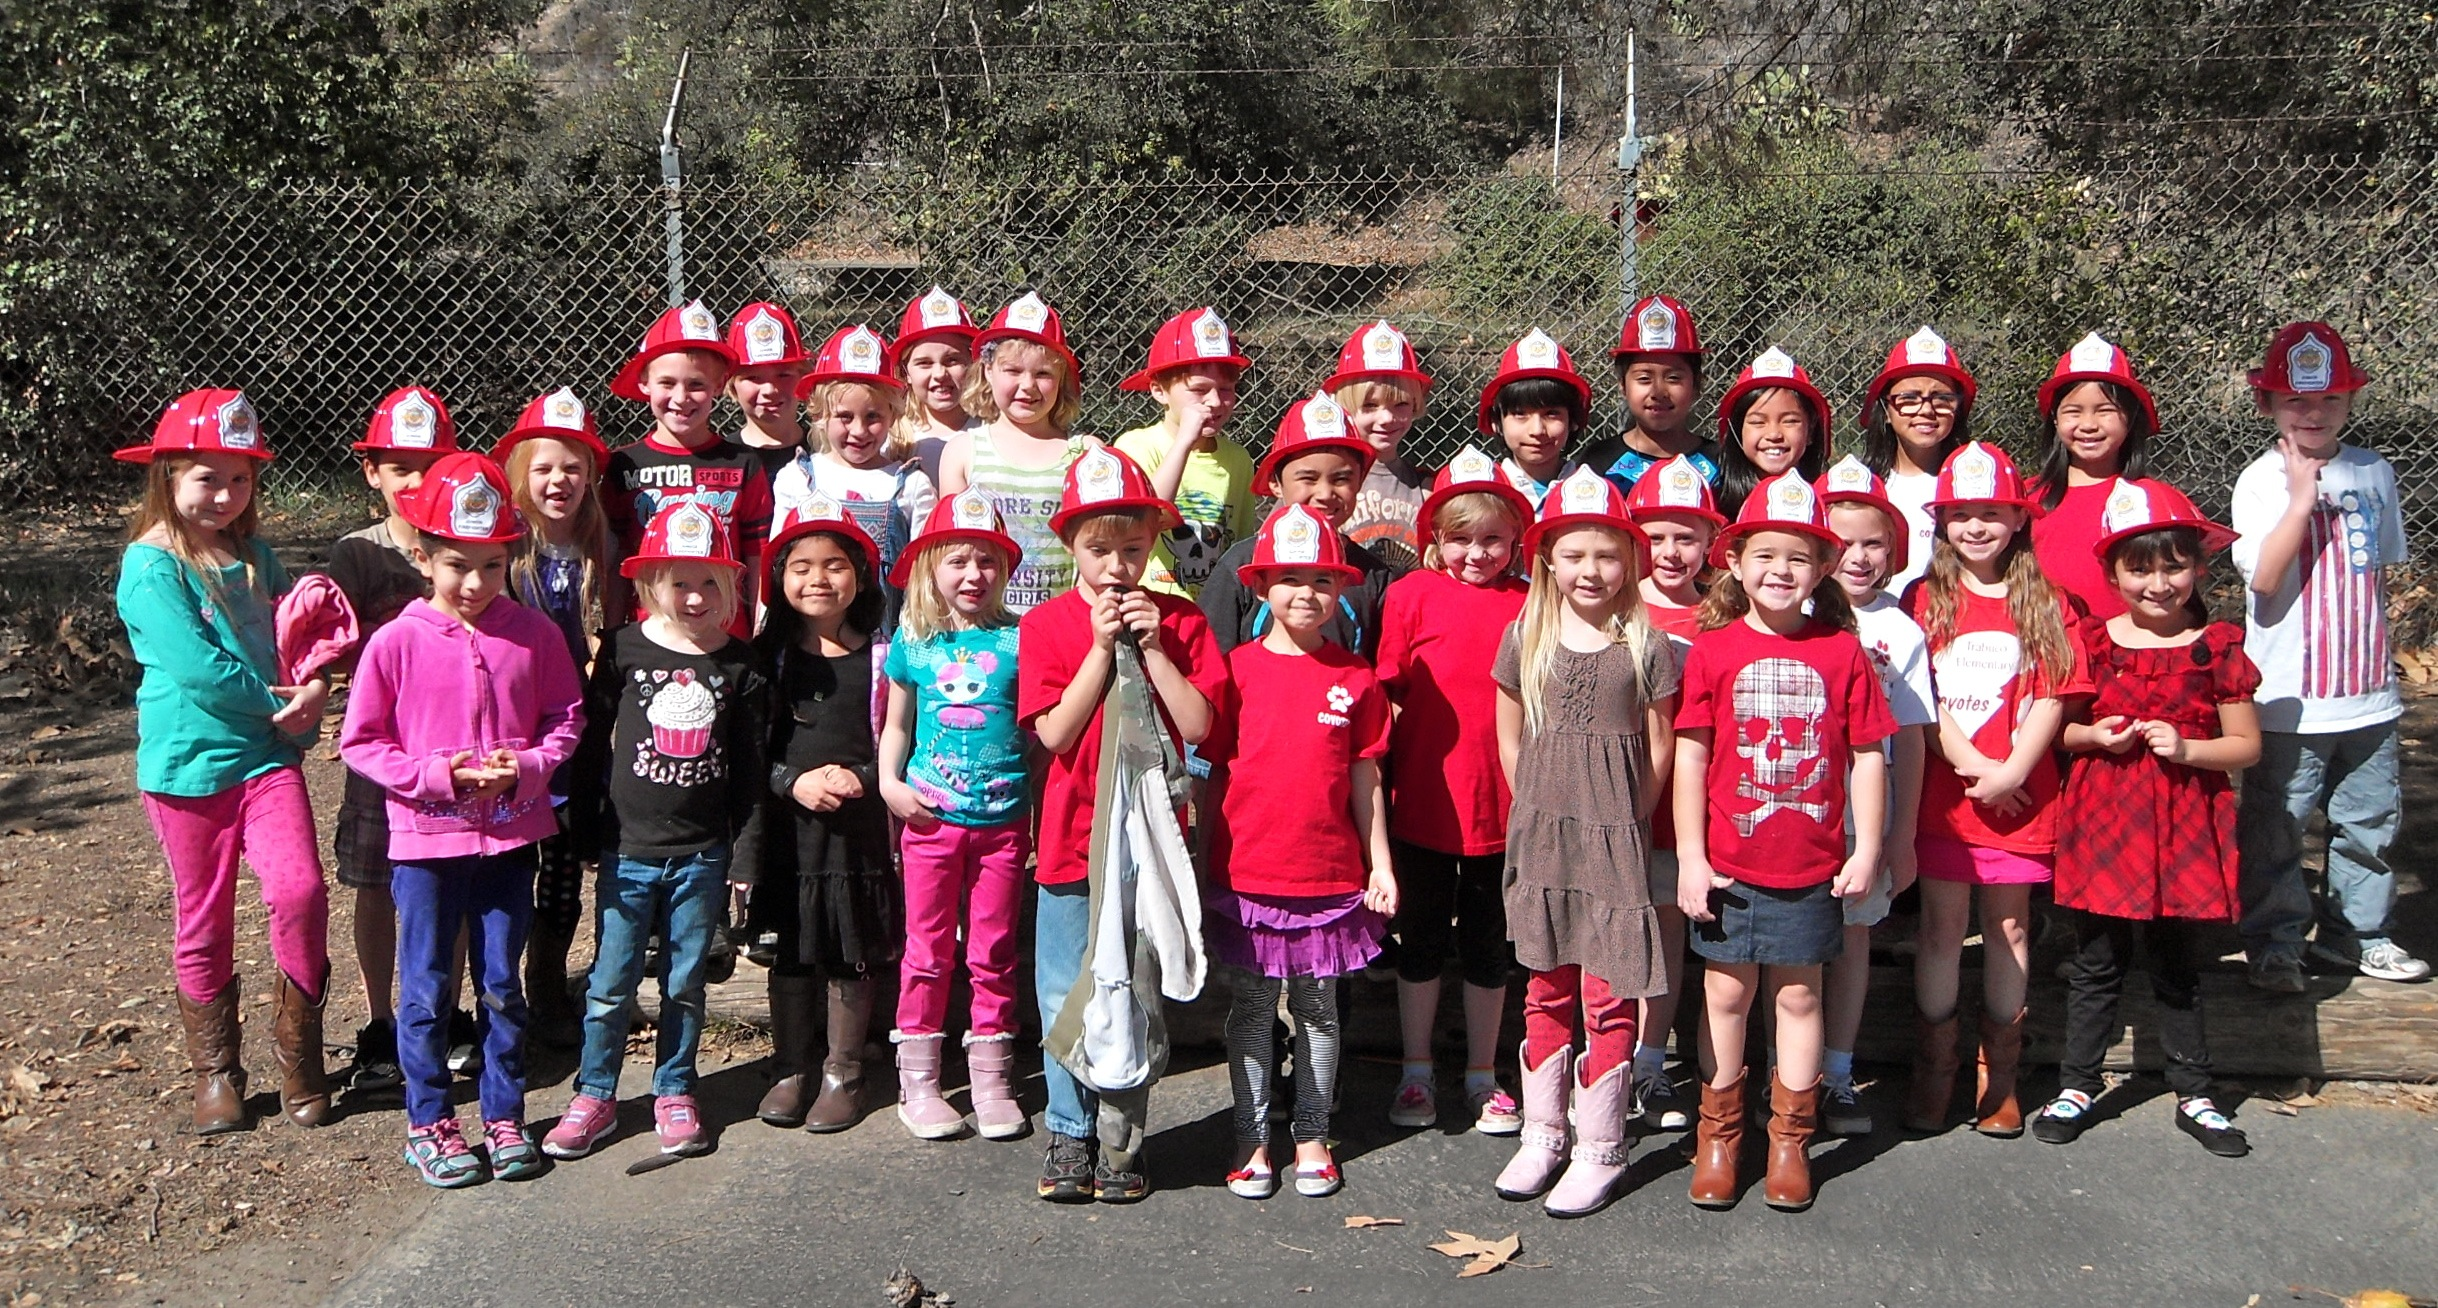 There might be more than one future fire fighter in this crew!